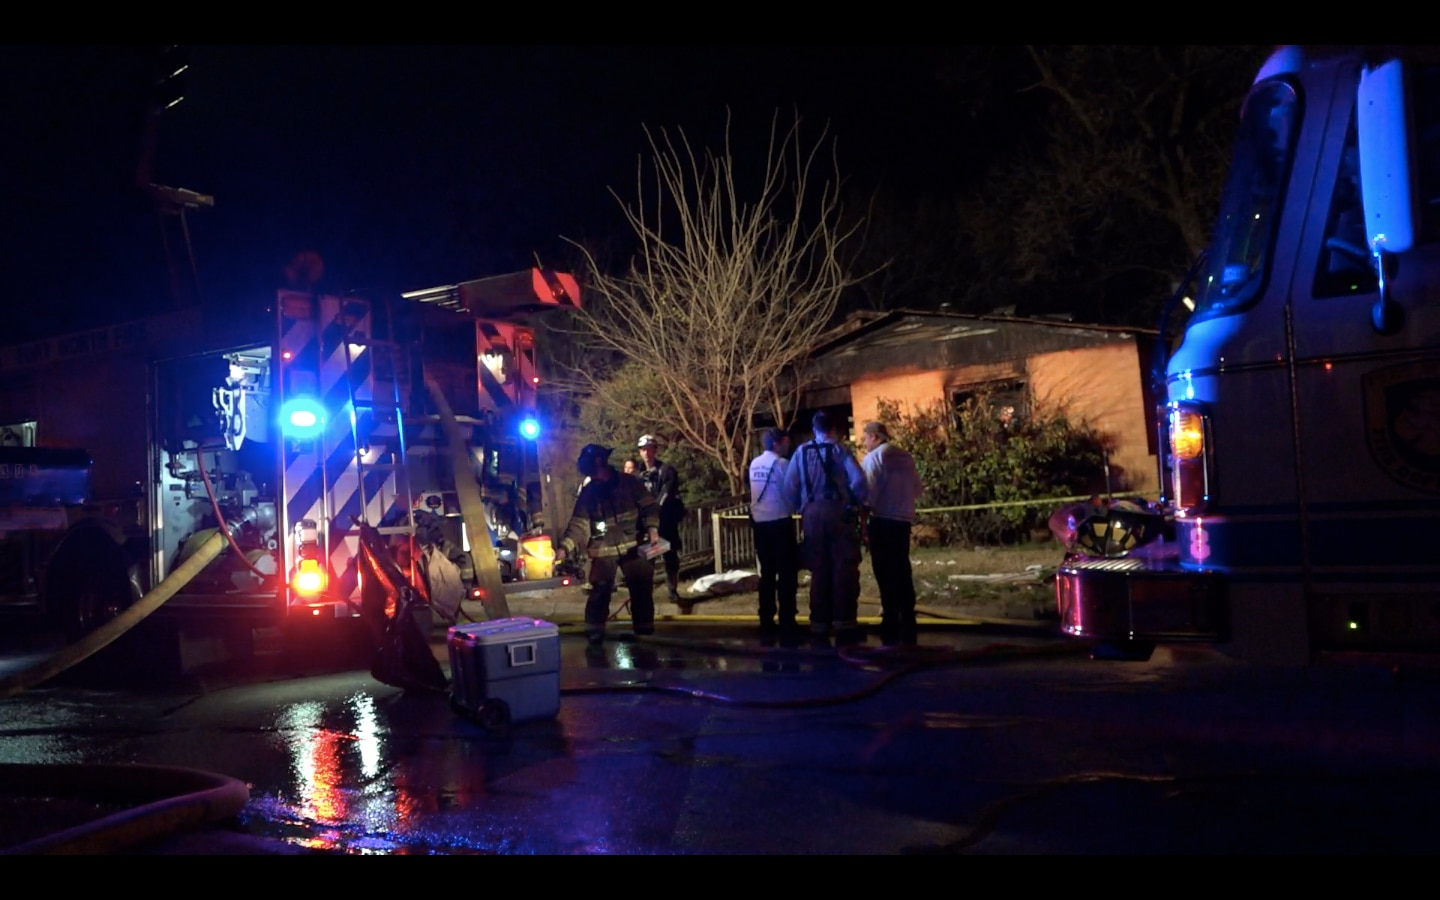 Fire officials survey the scene outside a home that burned Wednesday morning in Fort Worth. Two people inside the home were injured.